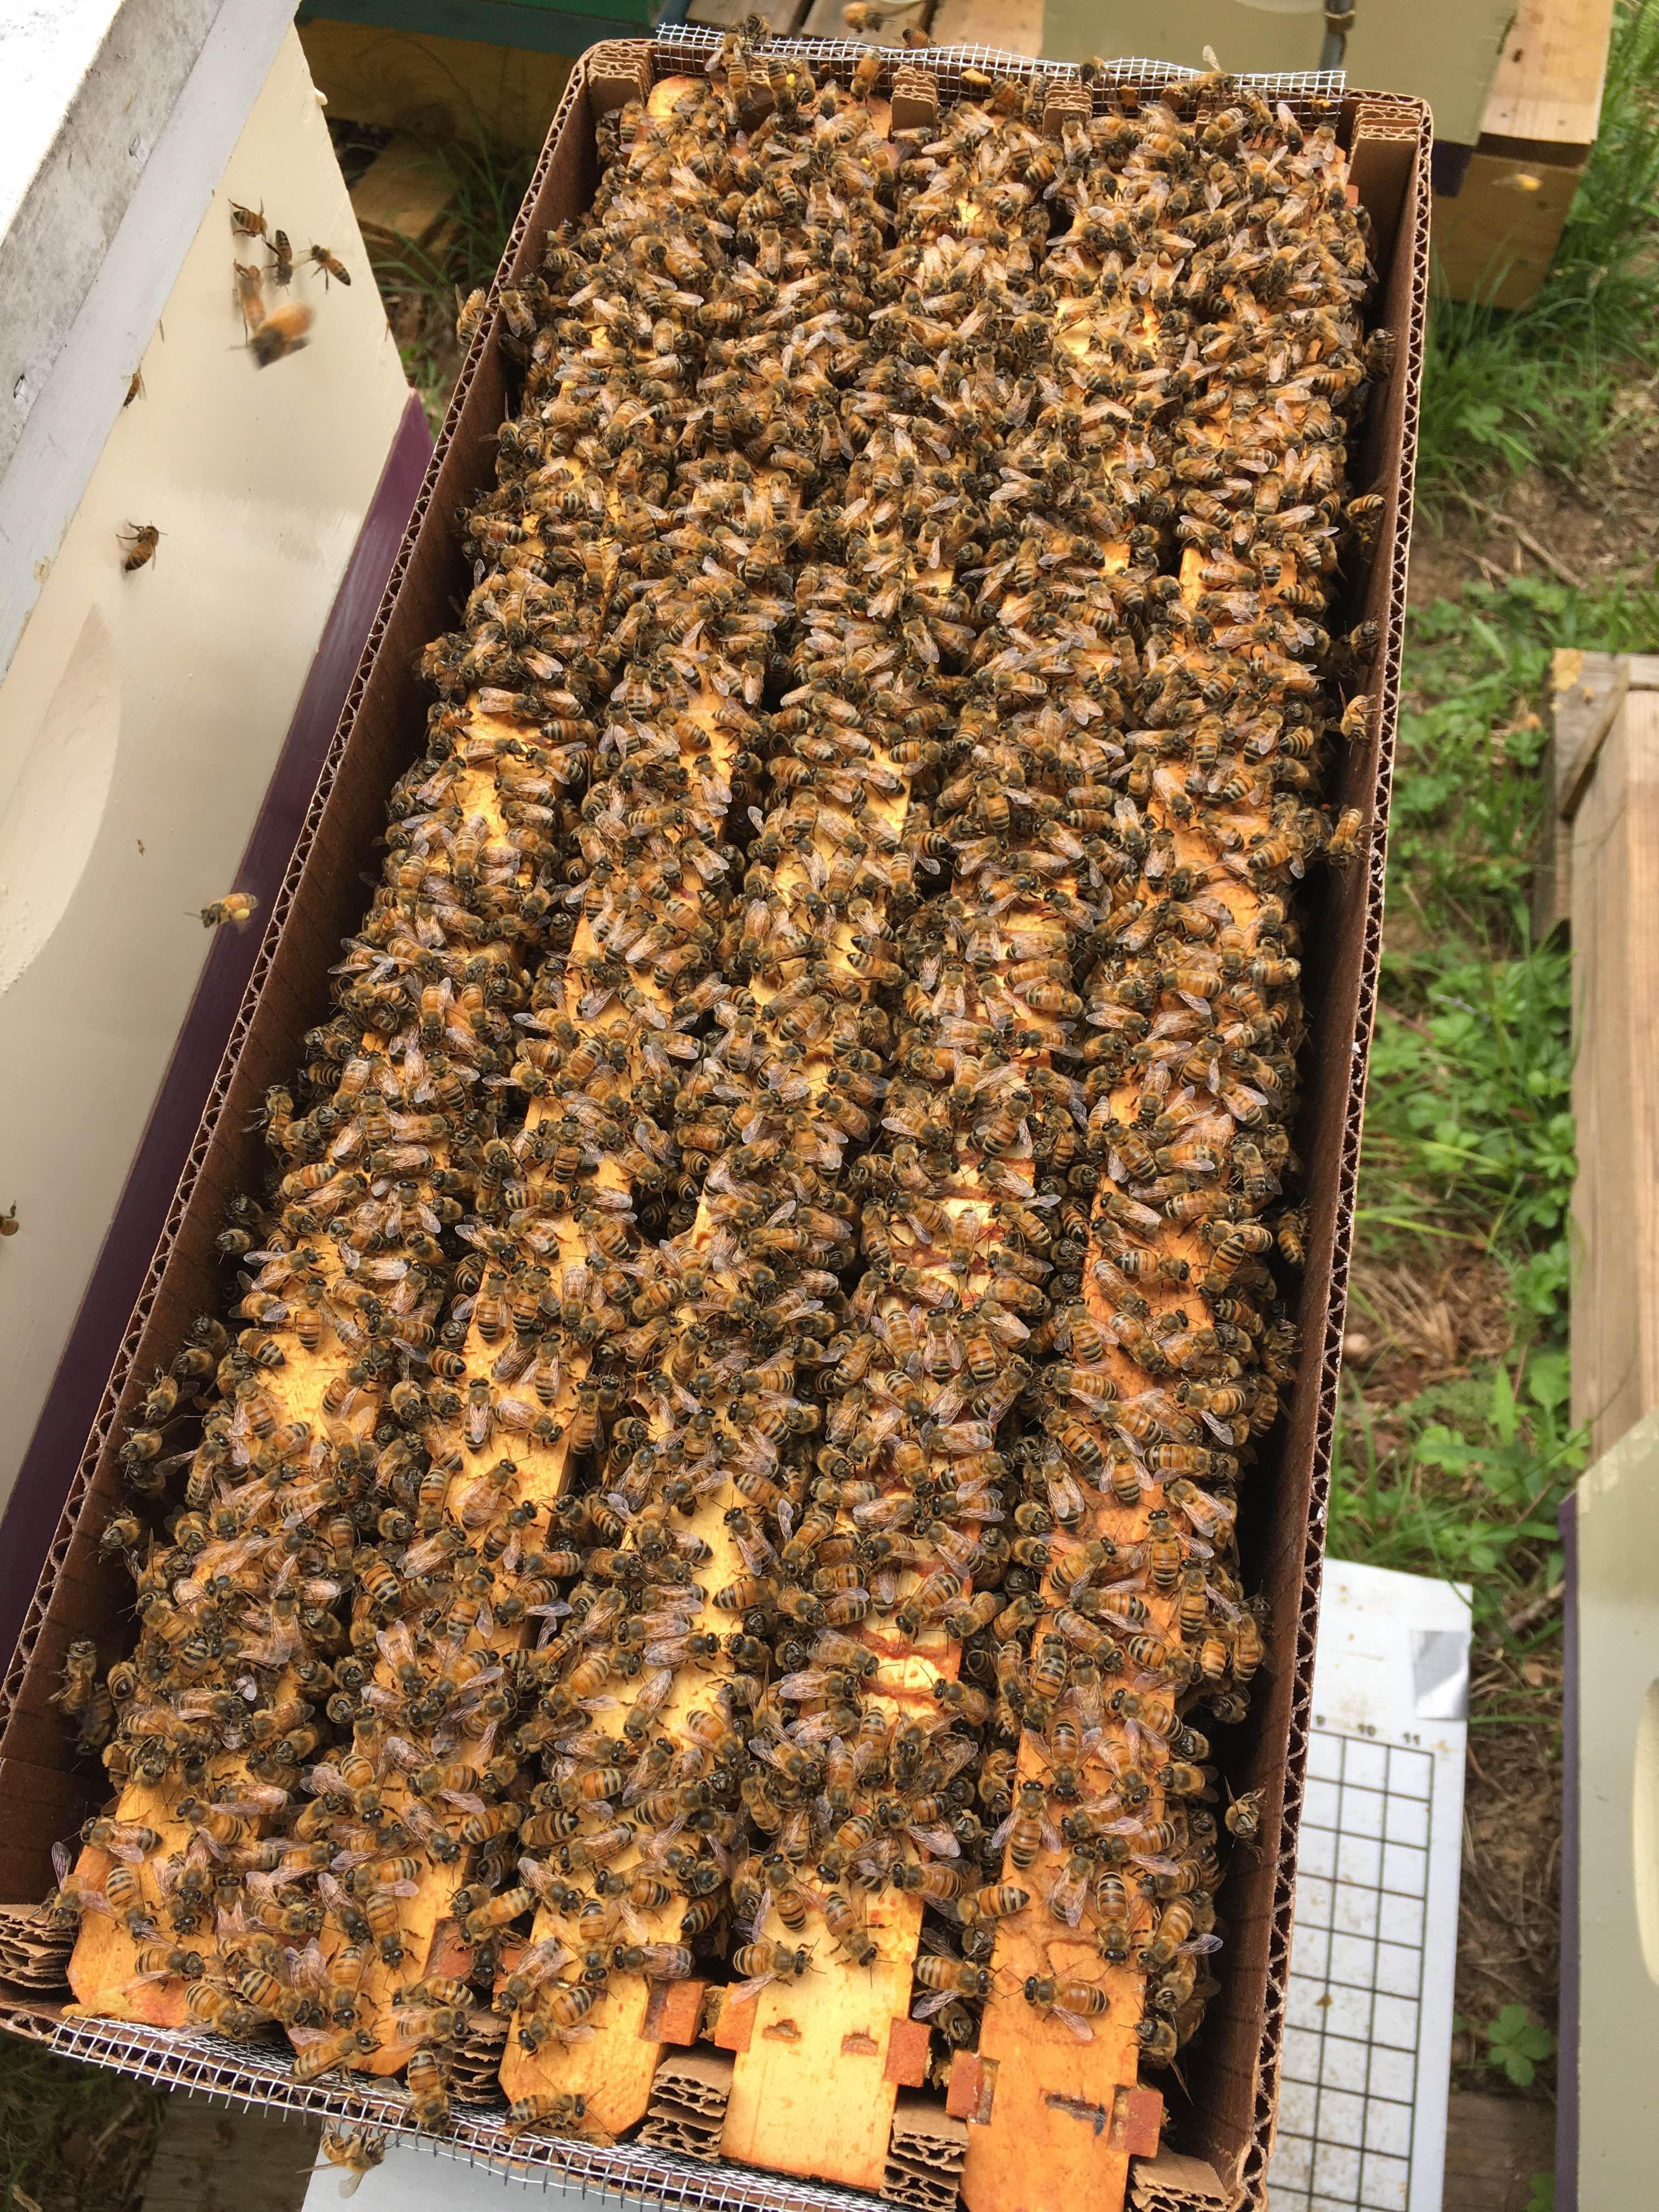 Growing nuc hives for new beekeepers in Yancey County -  Leigh, Five Apple Farm